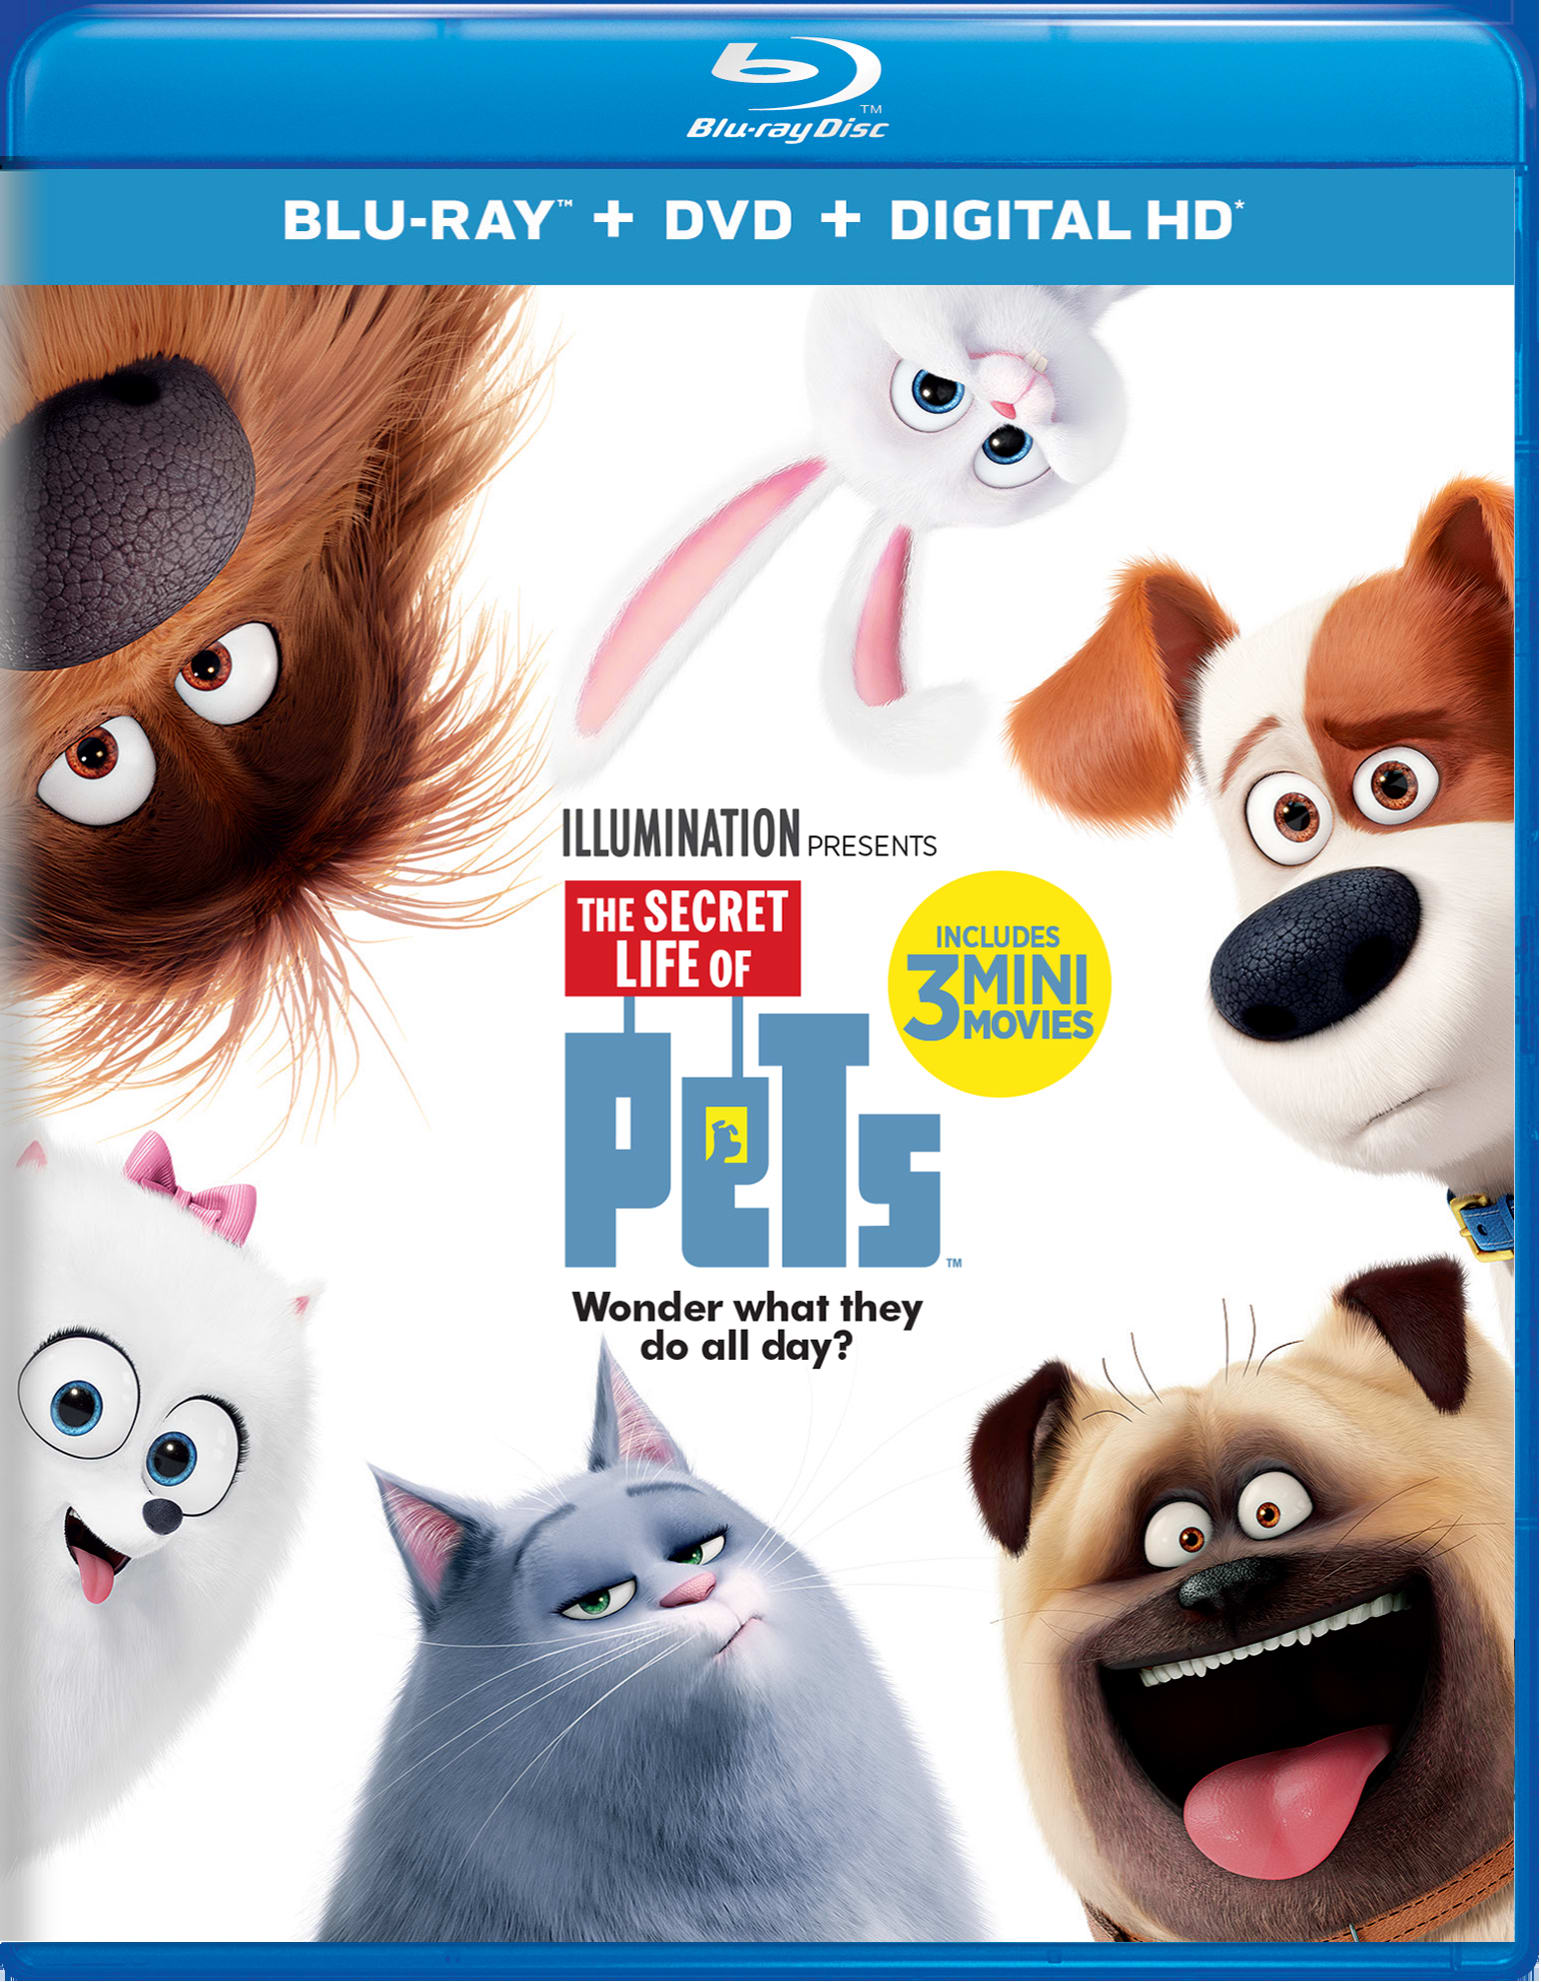 The Secret Life of Pets (DVD + Digital) [Blu-ray]